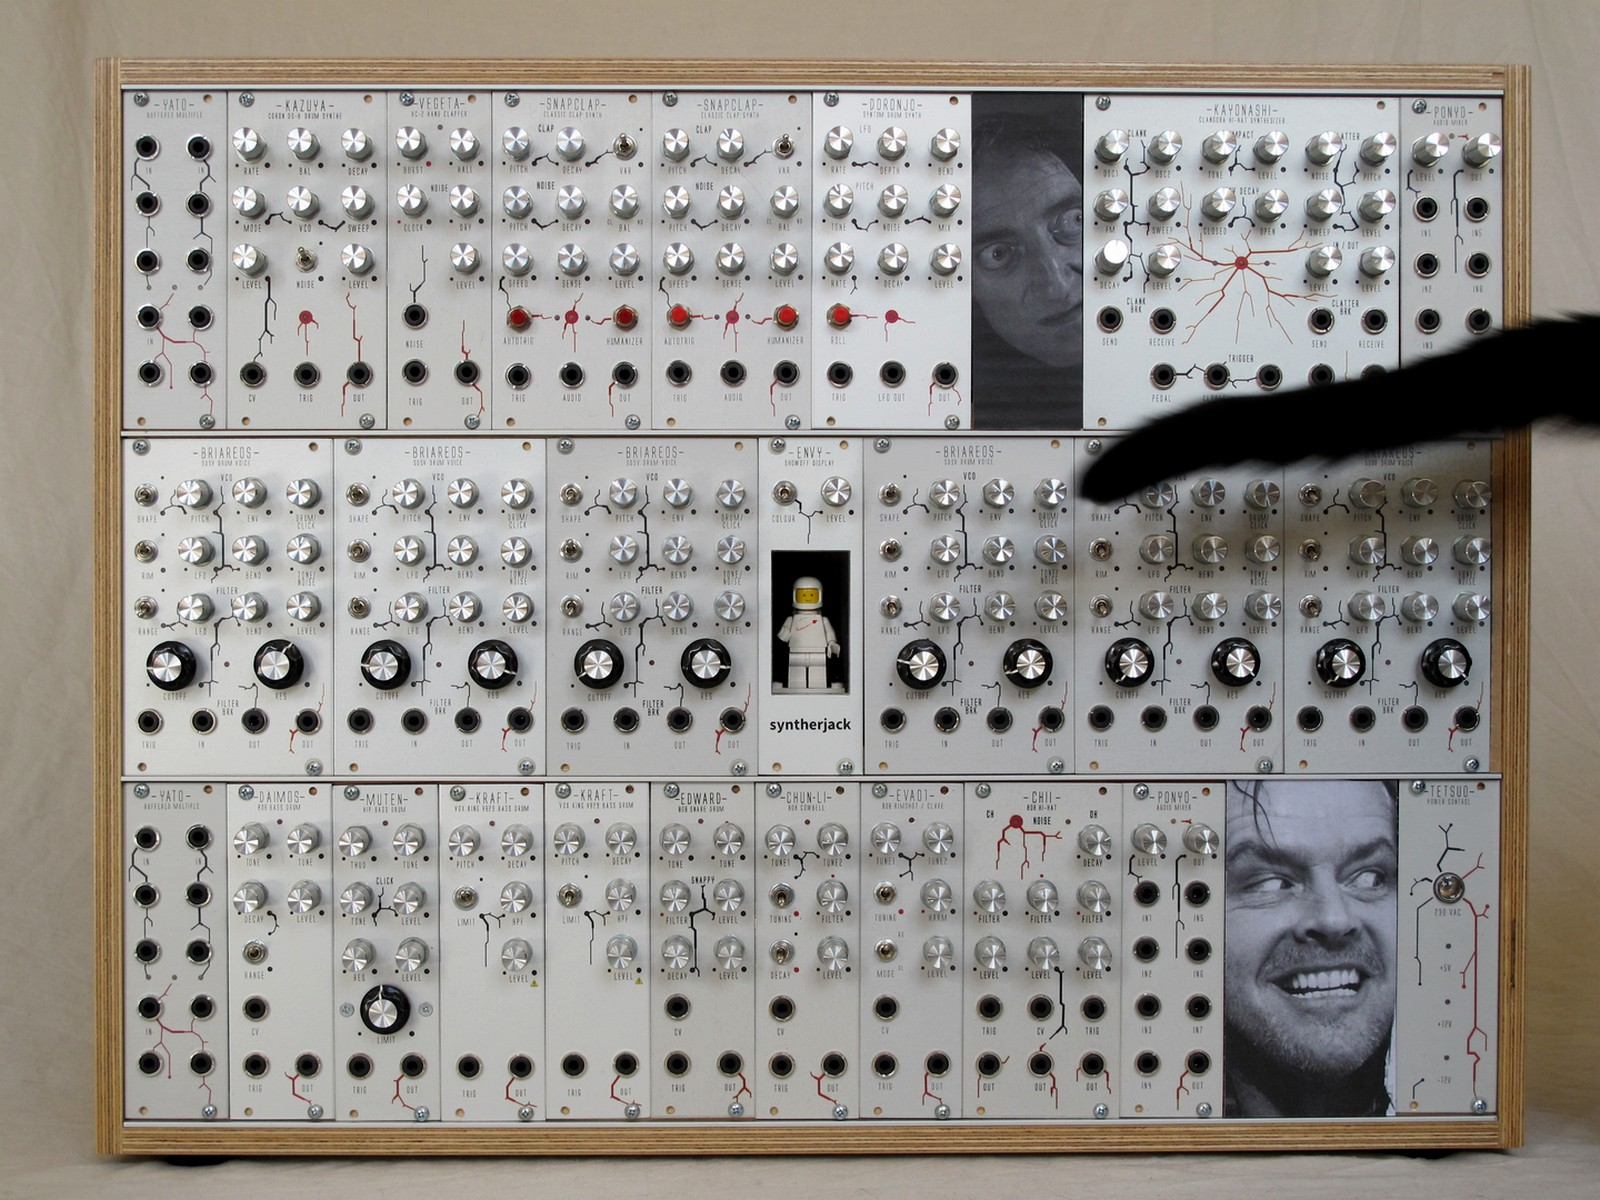 Modular synth photo with DIY eurorack blanks